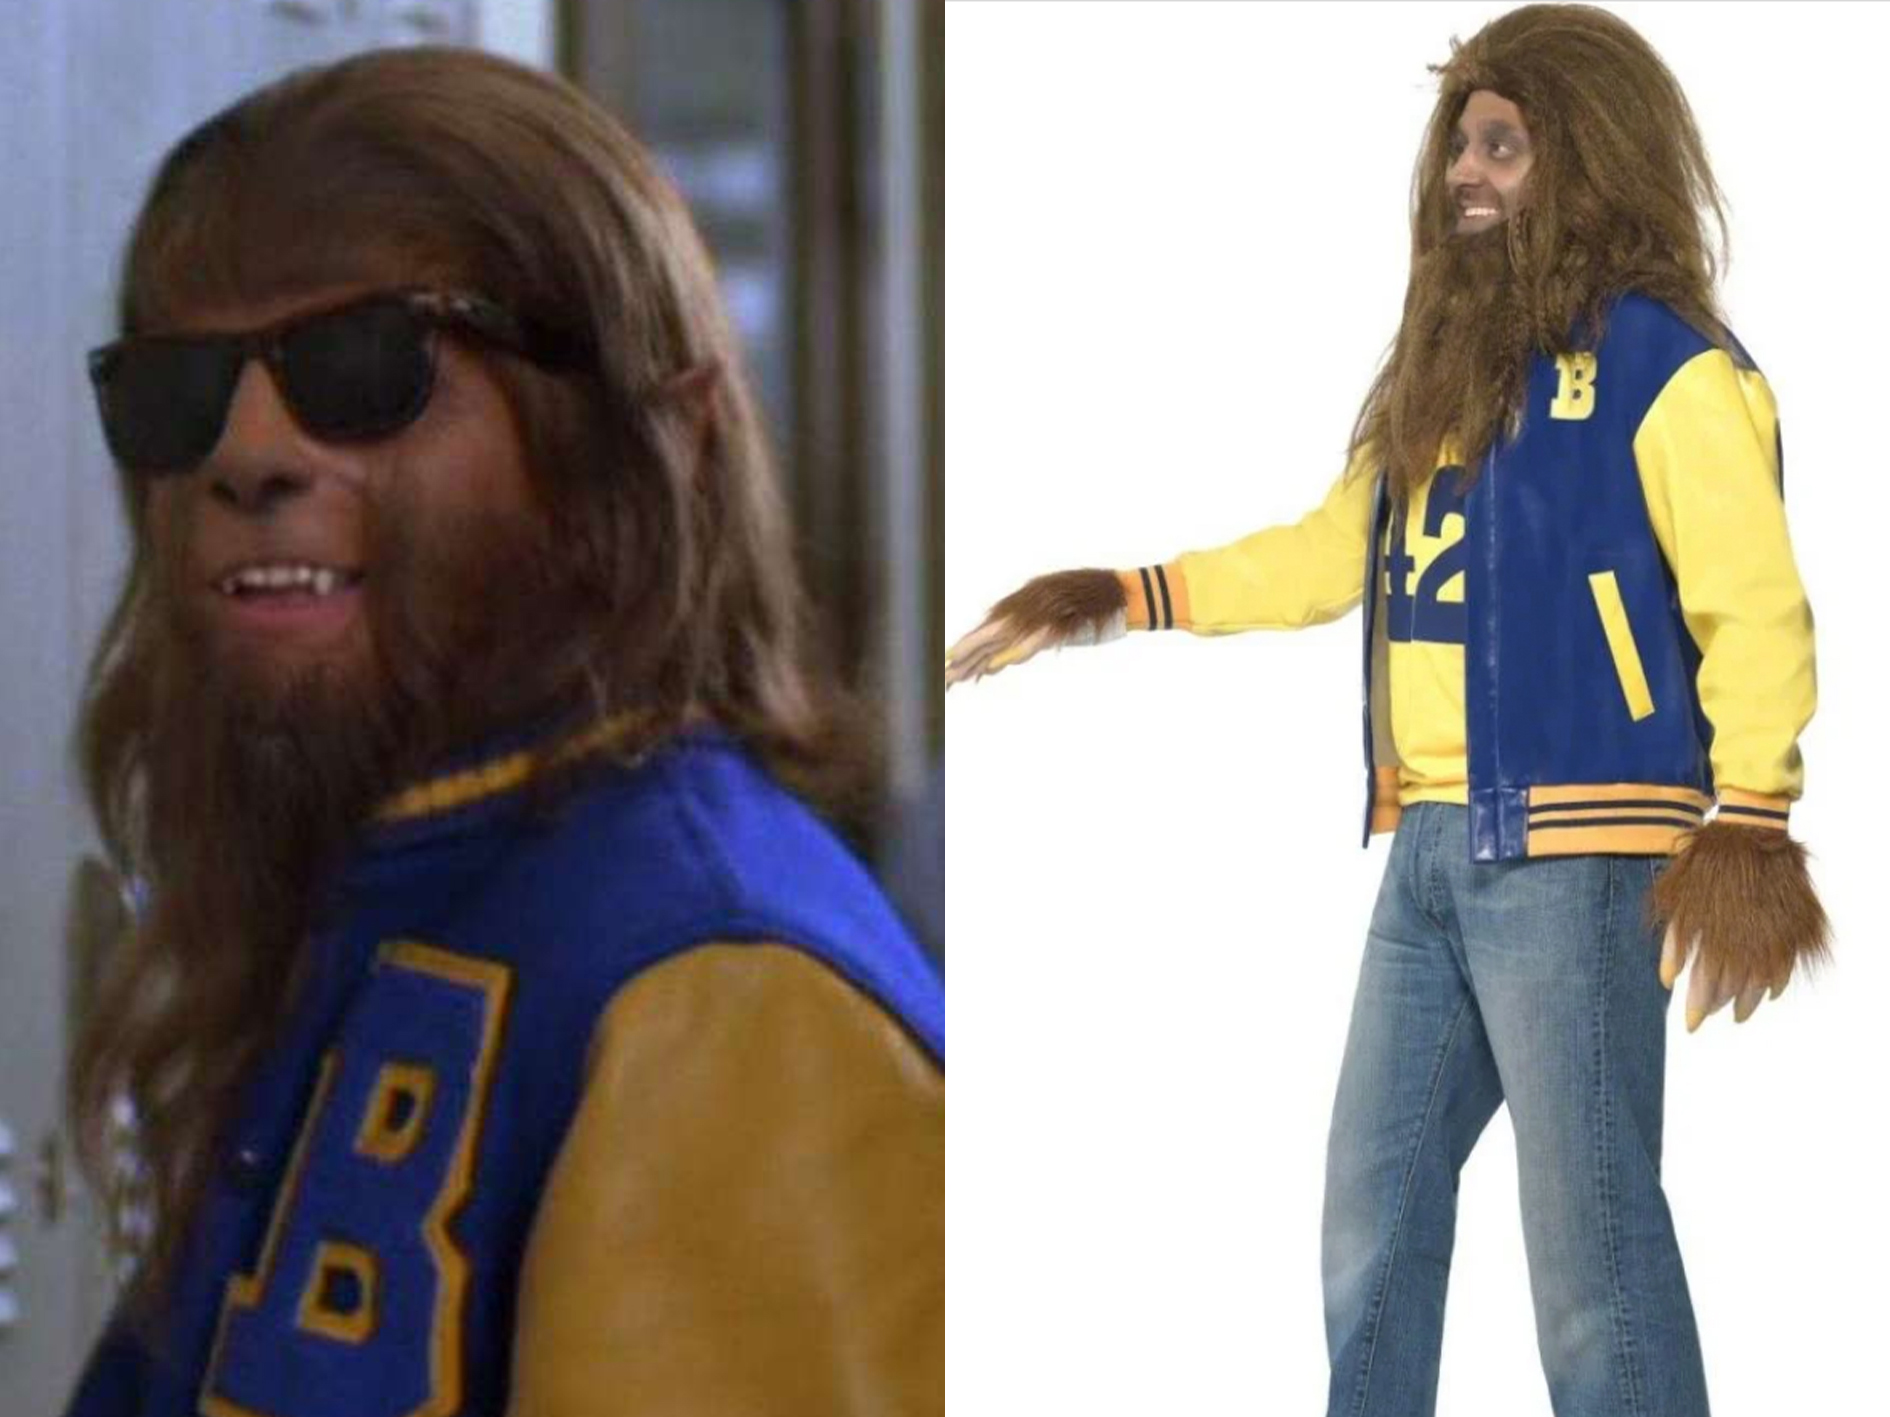 Teen Wolf 15 Halloween Costumes Inspired By The 80s - Who Will You Go As?